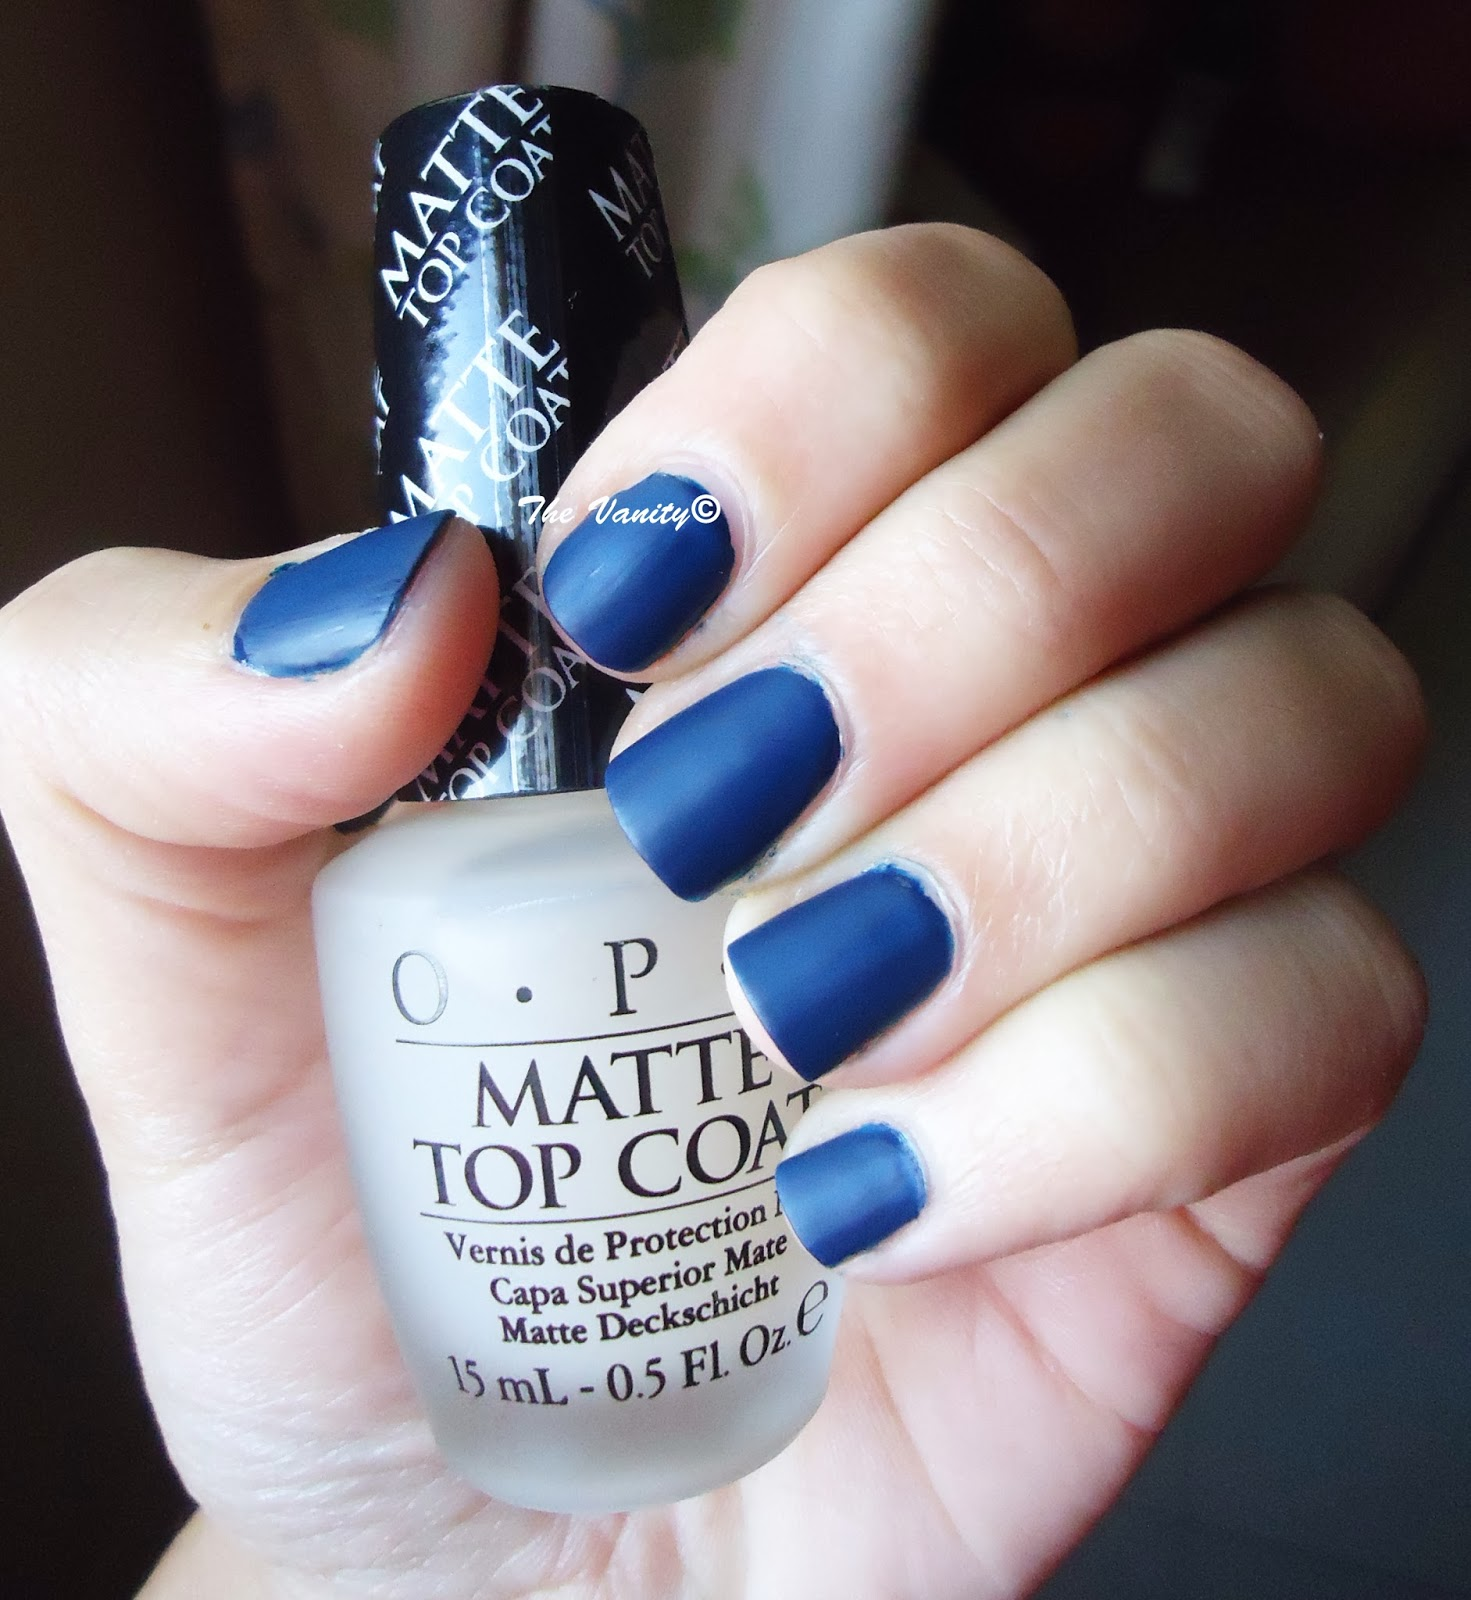 O.P.I Matte Top coat review | The Vanity